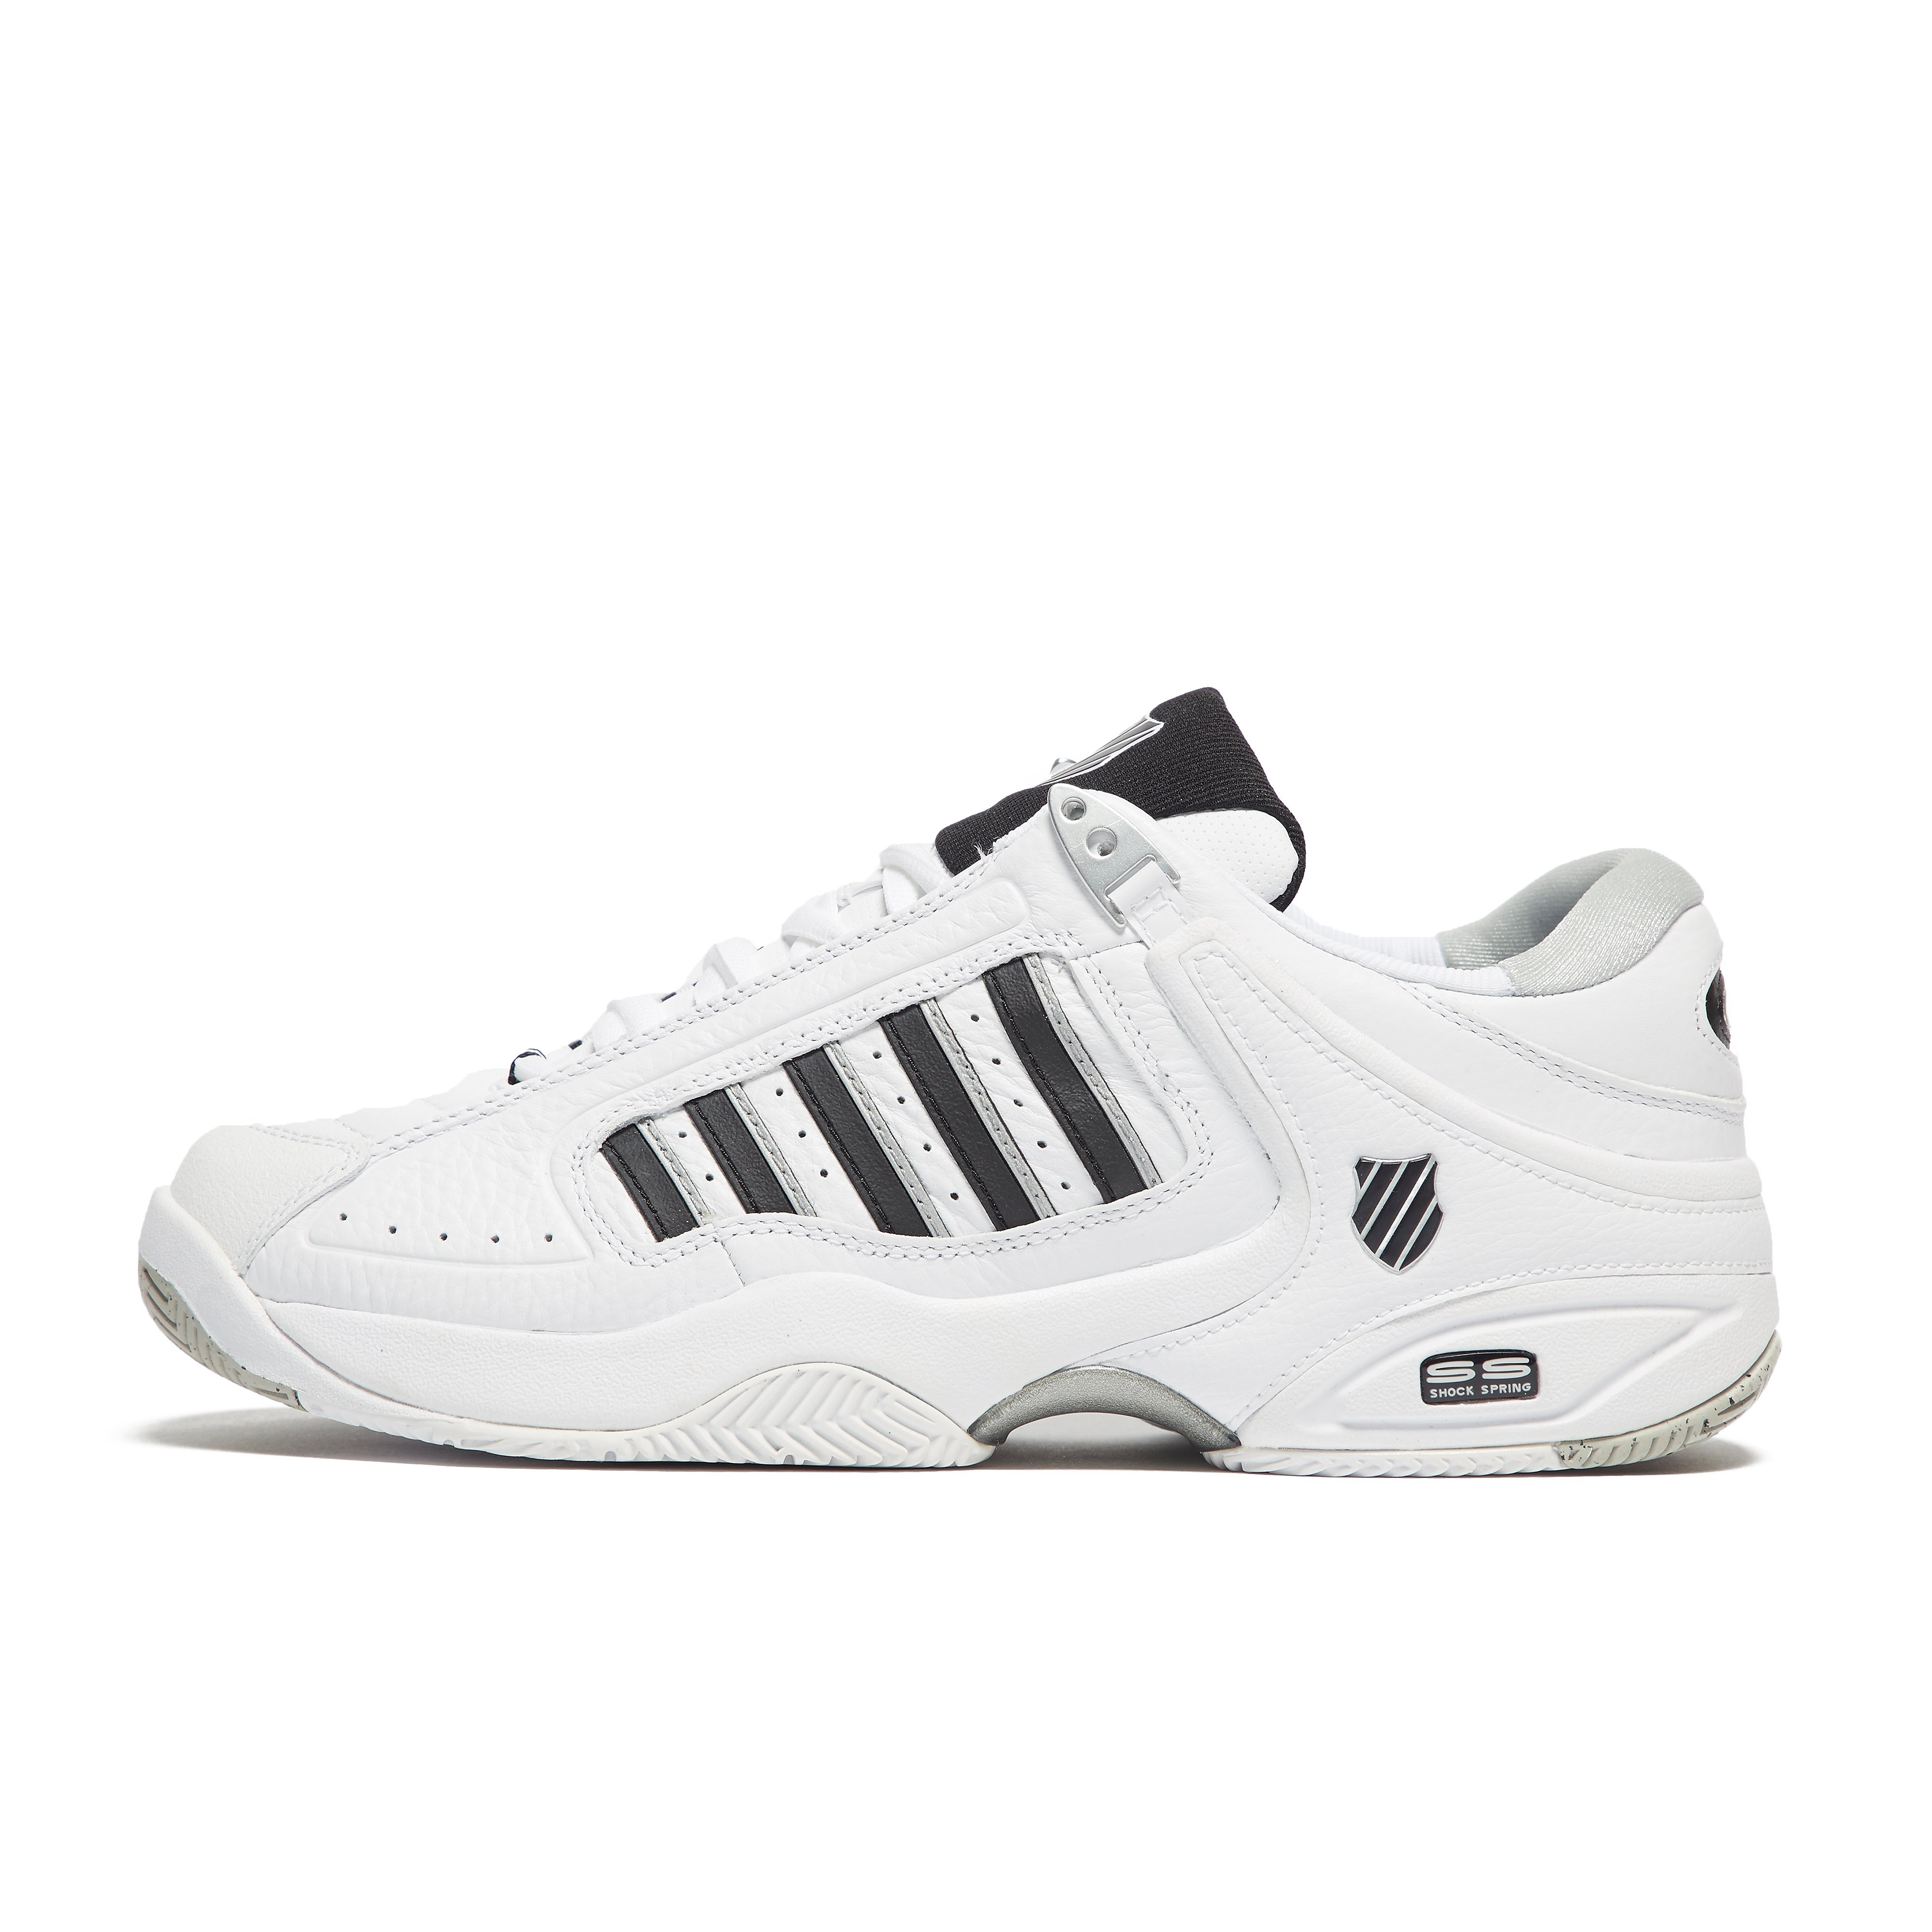 K-Swiss K-Swiss Defier Men's Tennis Shoes